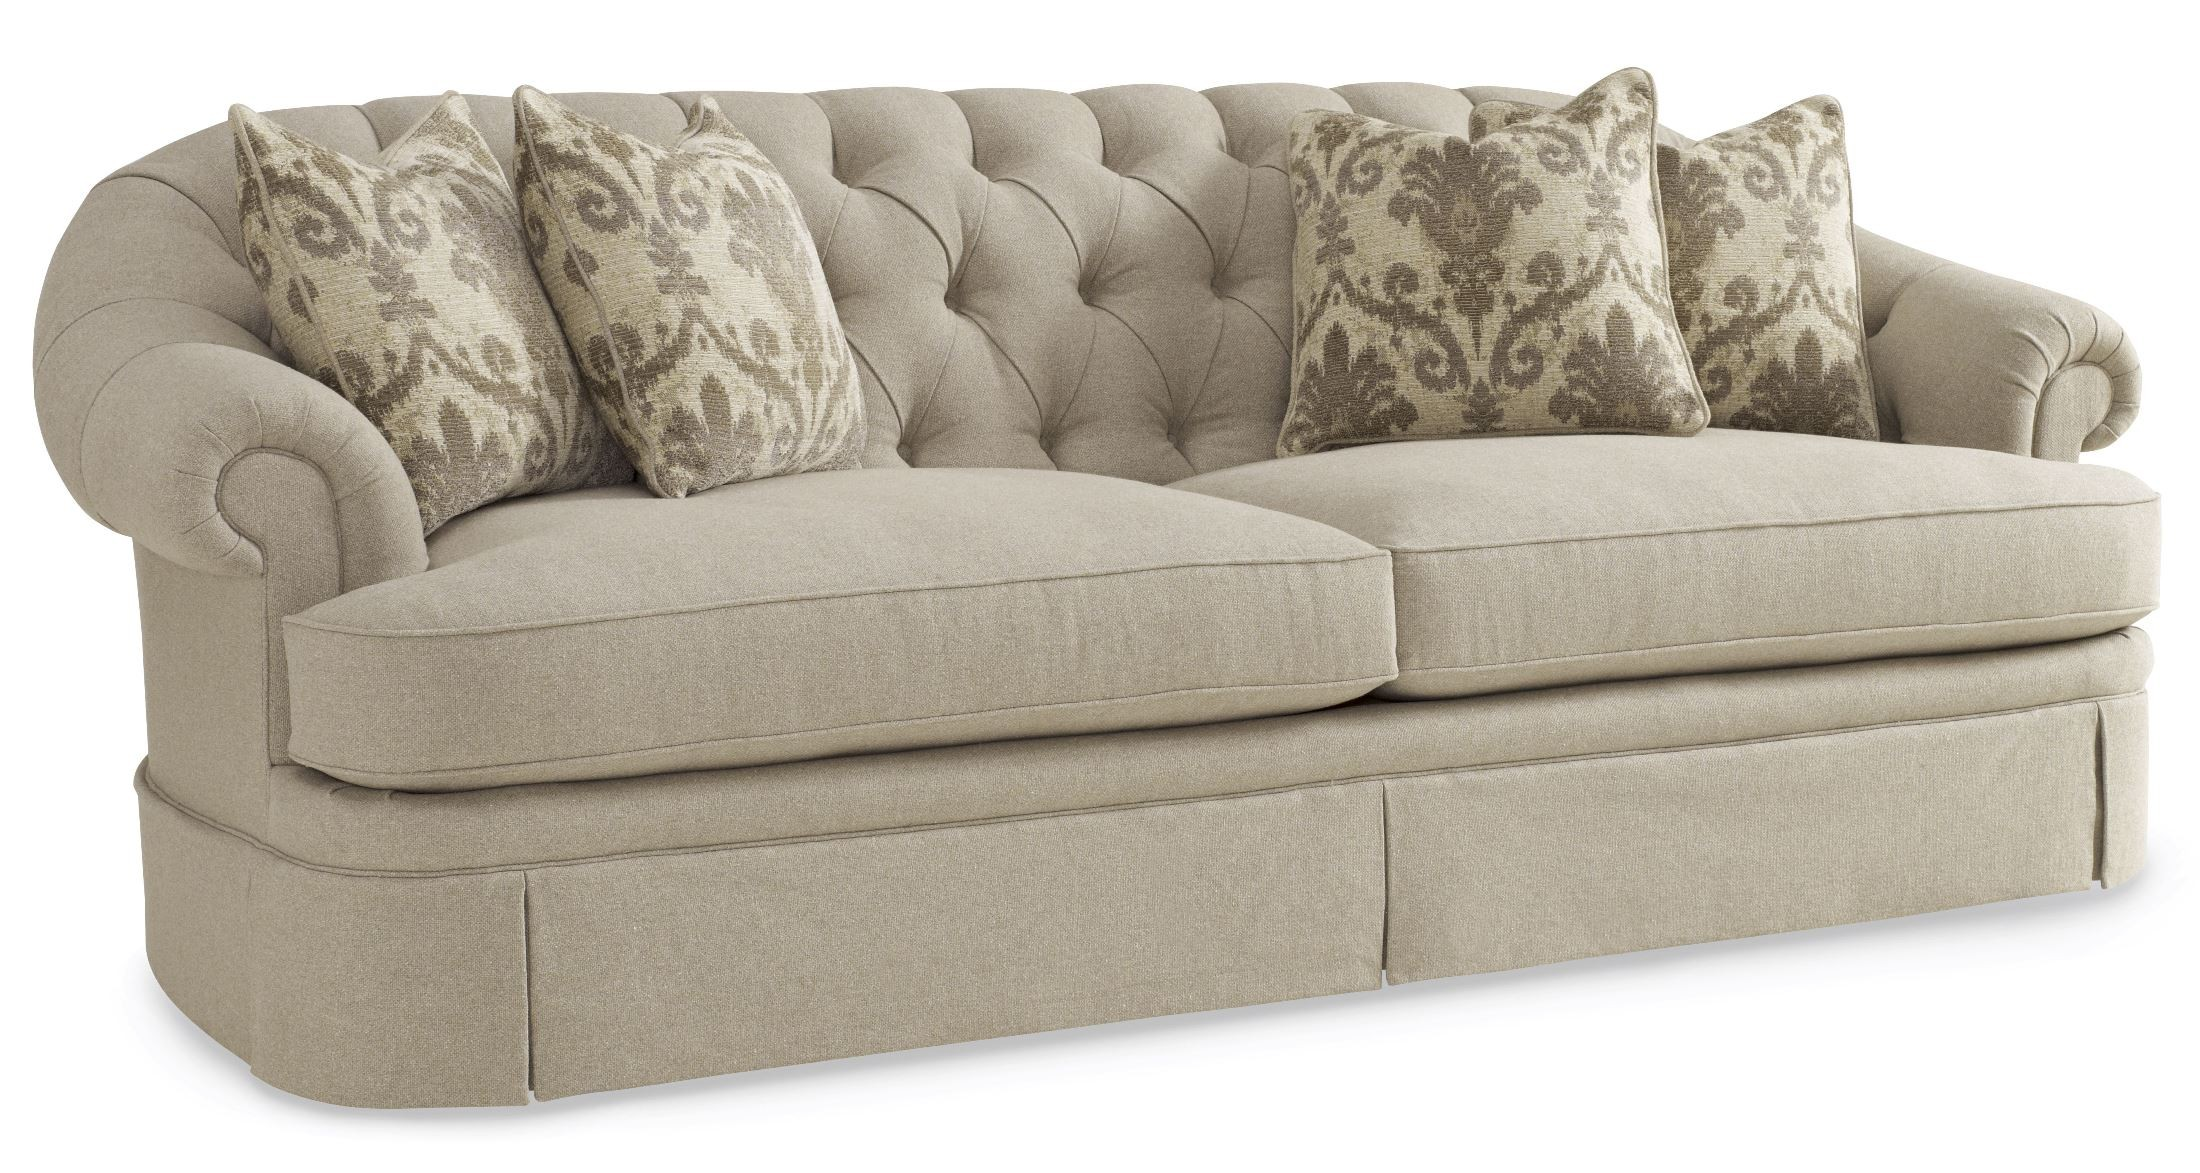 Collection one upholstered oxford tufted skirted sofa from art 517521 5001aa coleman furniture Upholstered sofas and loveseats